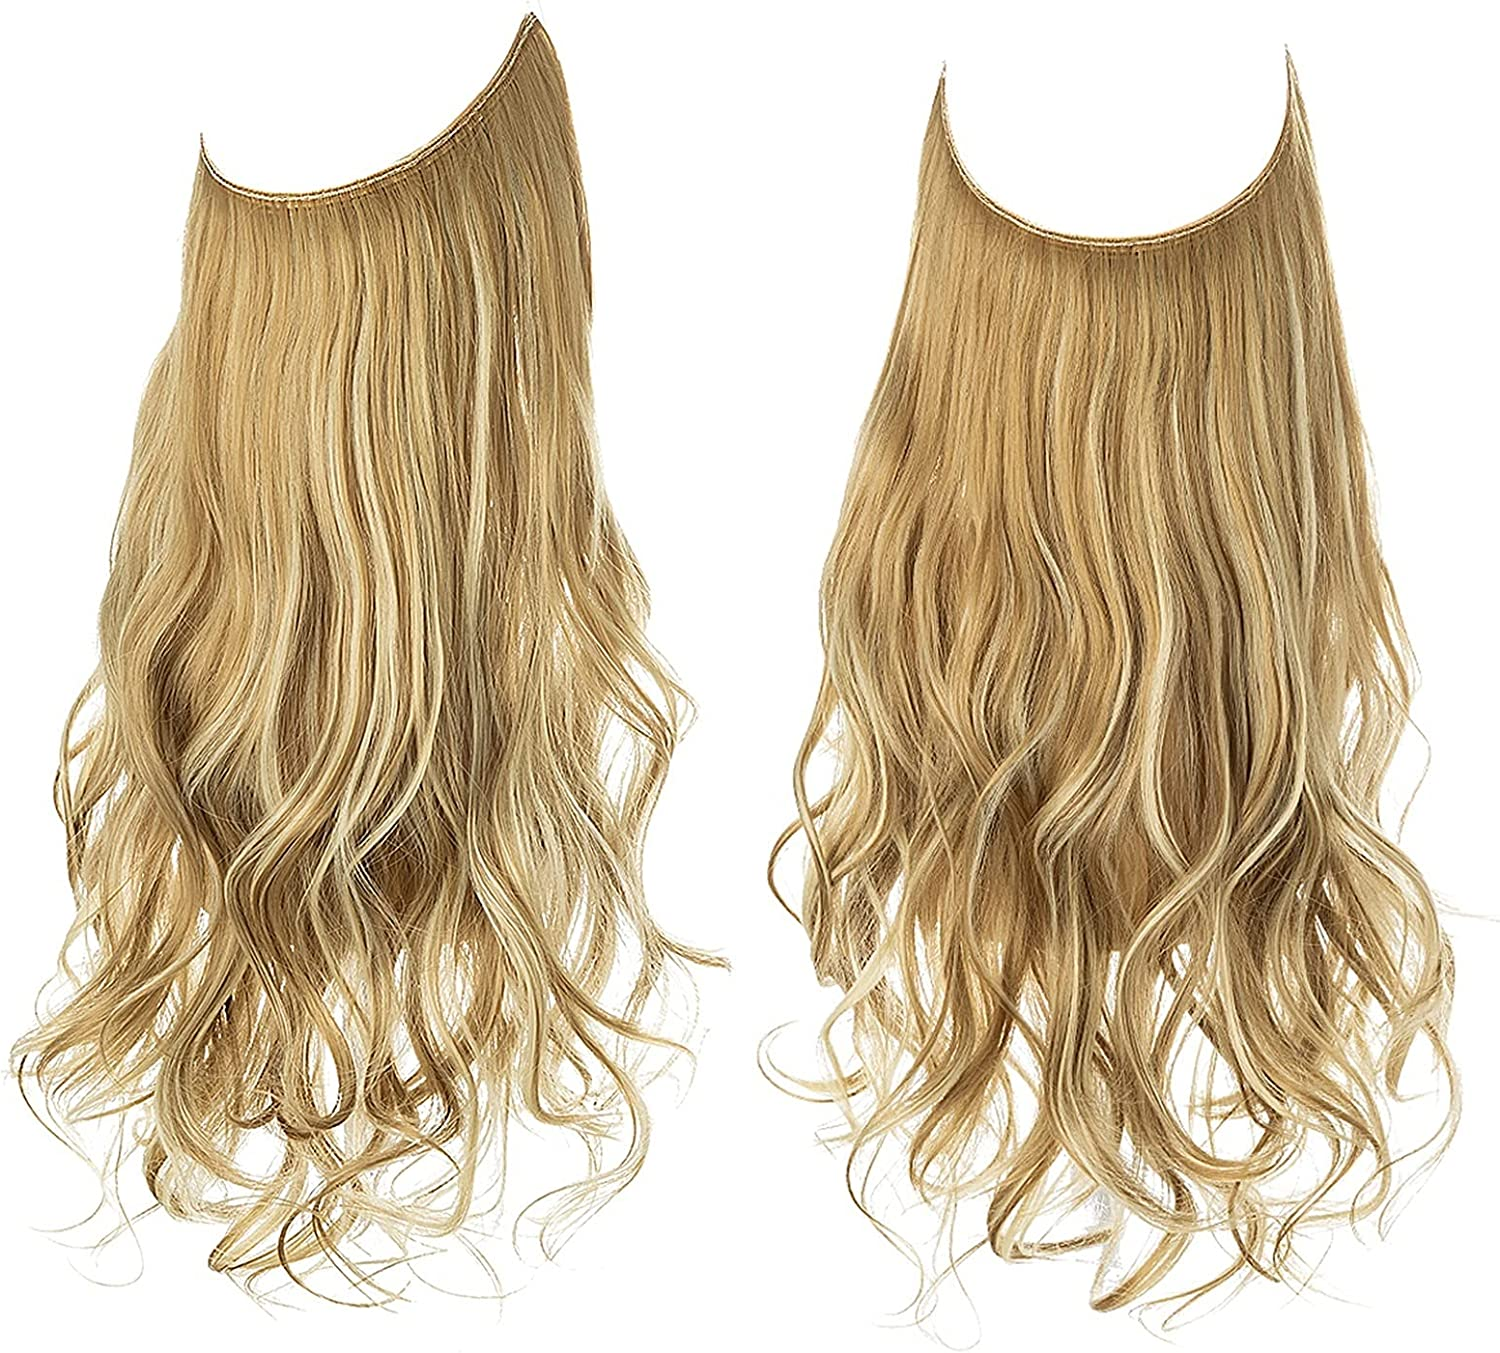 SHENYUAN Hair Extensions 14